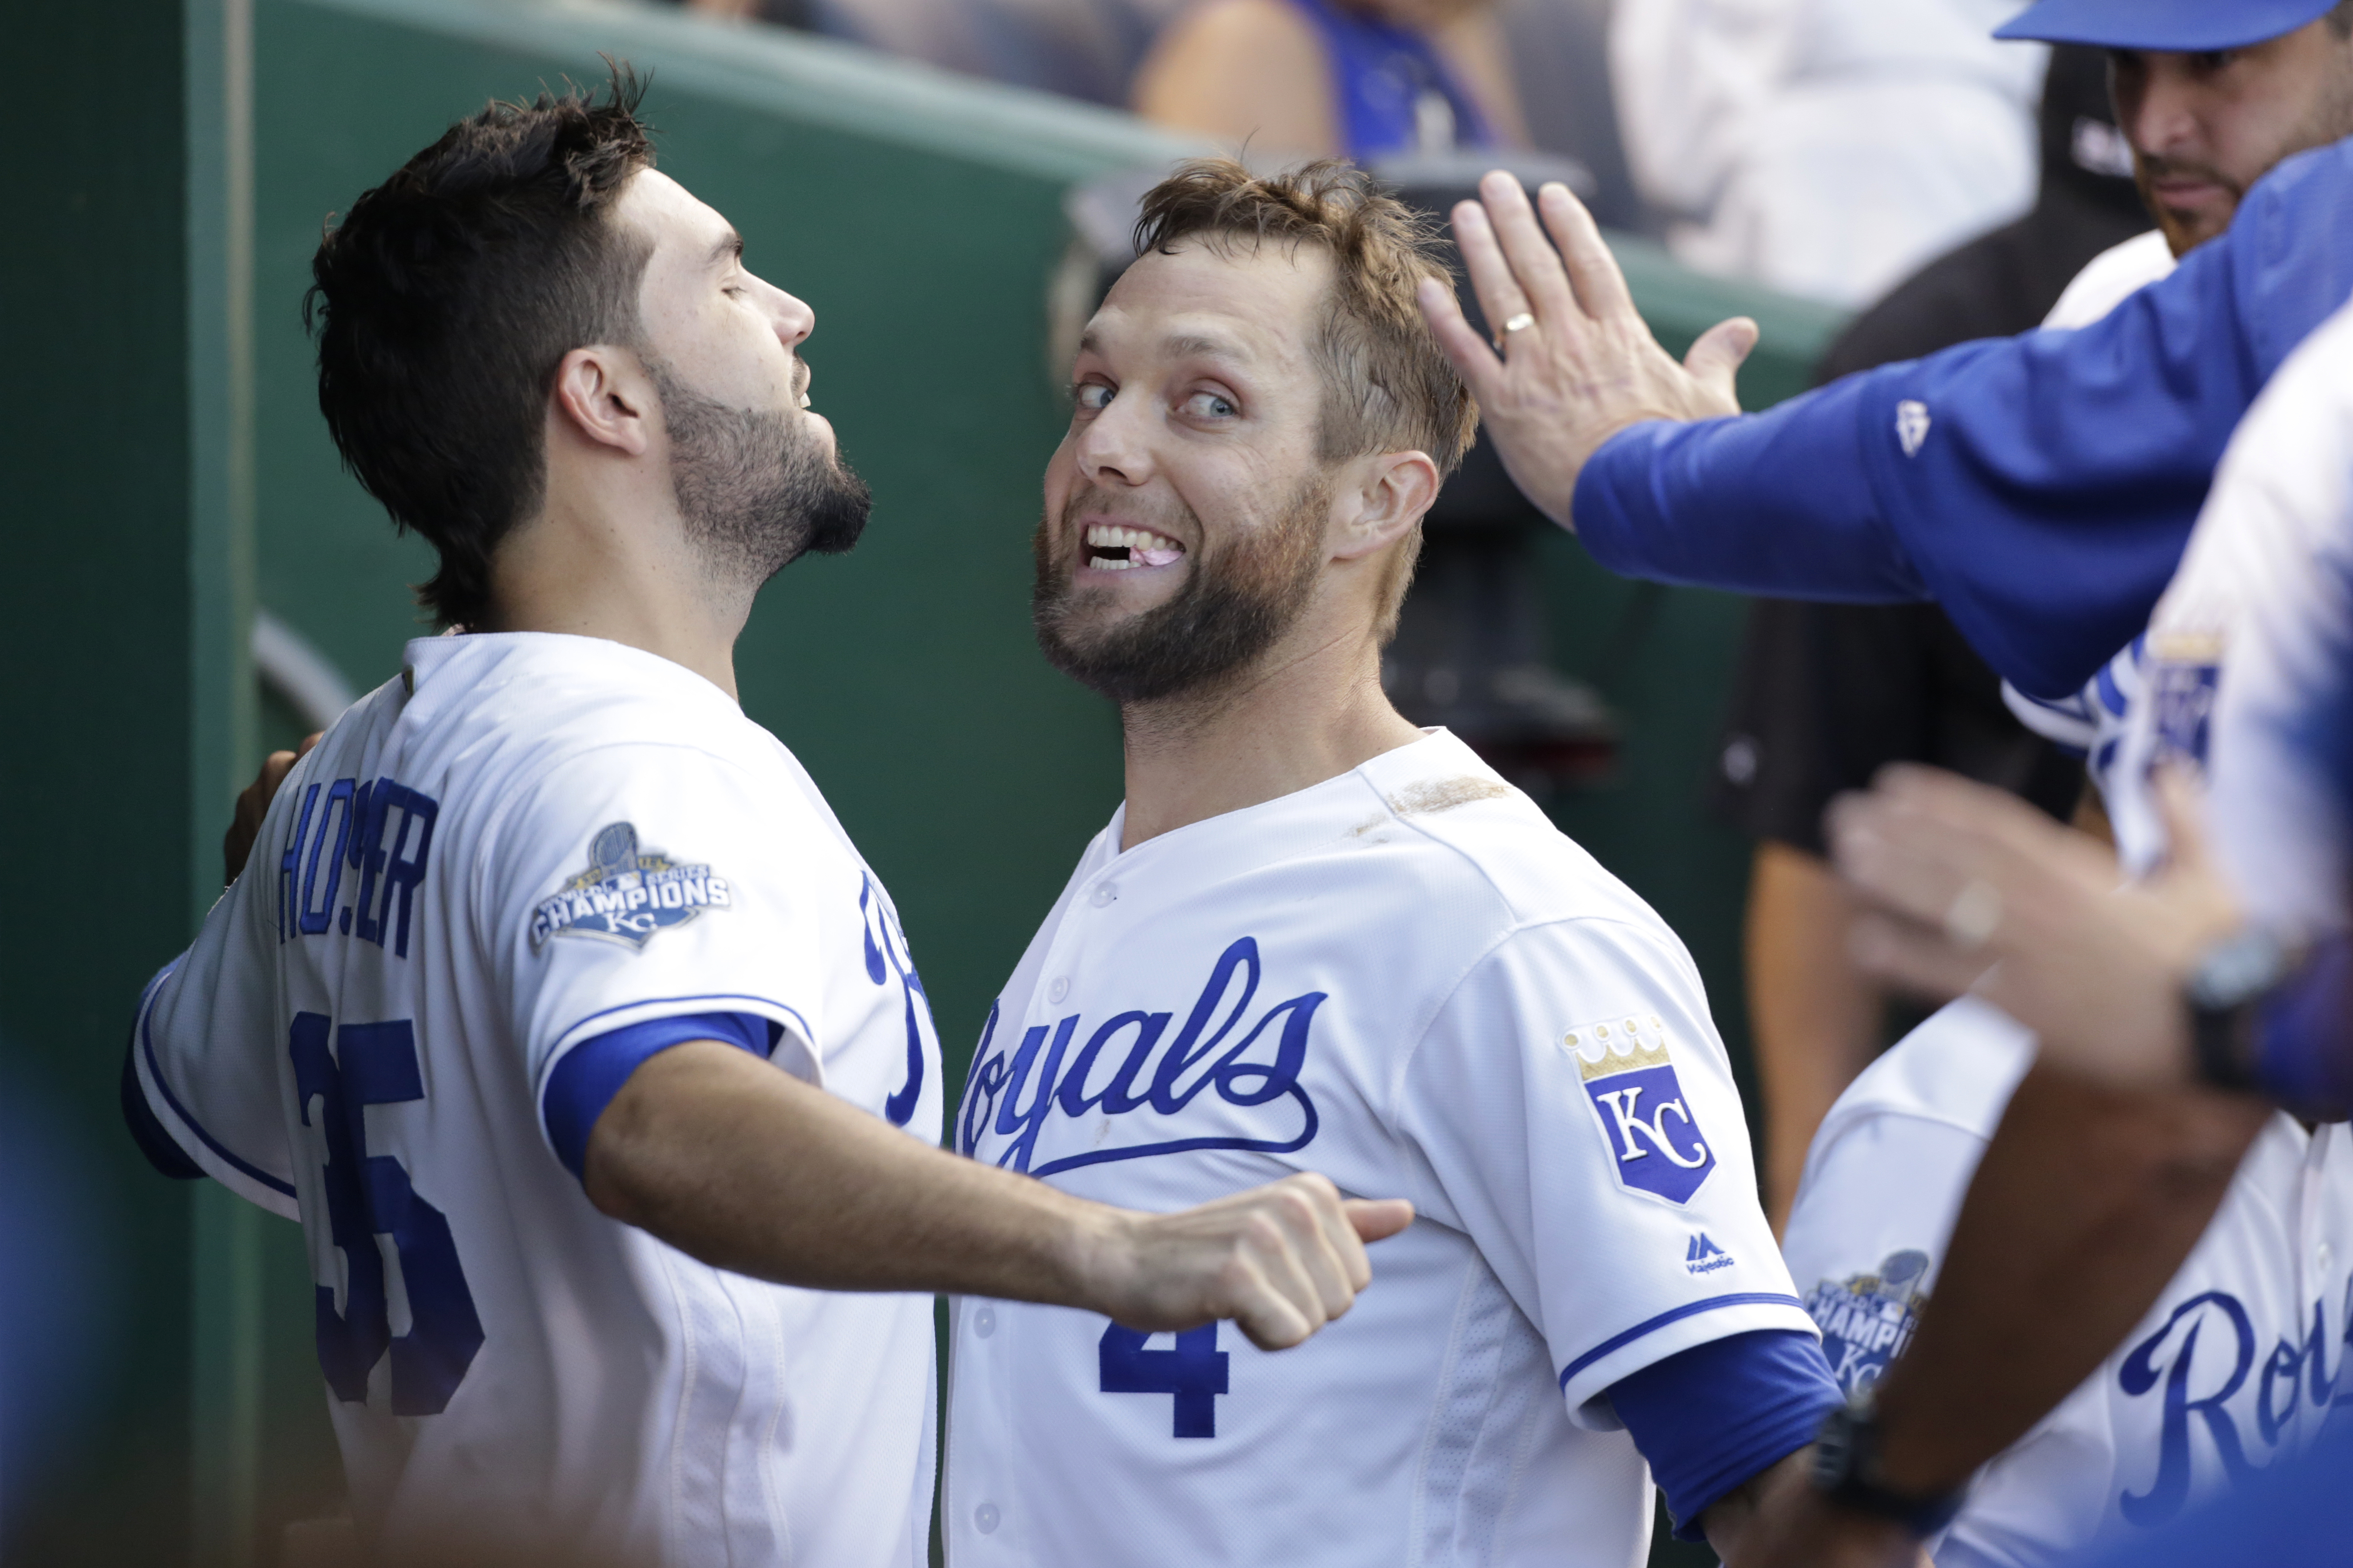 Kansas City Royals' Alex Gordon (4) reacts as he celebrates with Eric Hosmer (35) in the dugout after hitting a home run in the 4th inning of a baseball game against the at Kauffman Stadium in Kansas City, Mo., Saturday, Aug. 20, 2016. (AP Photo/Colin E.